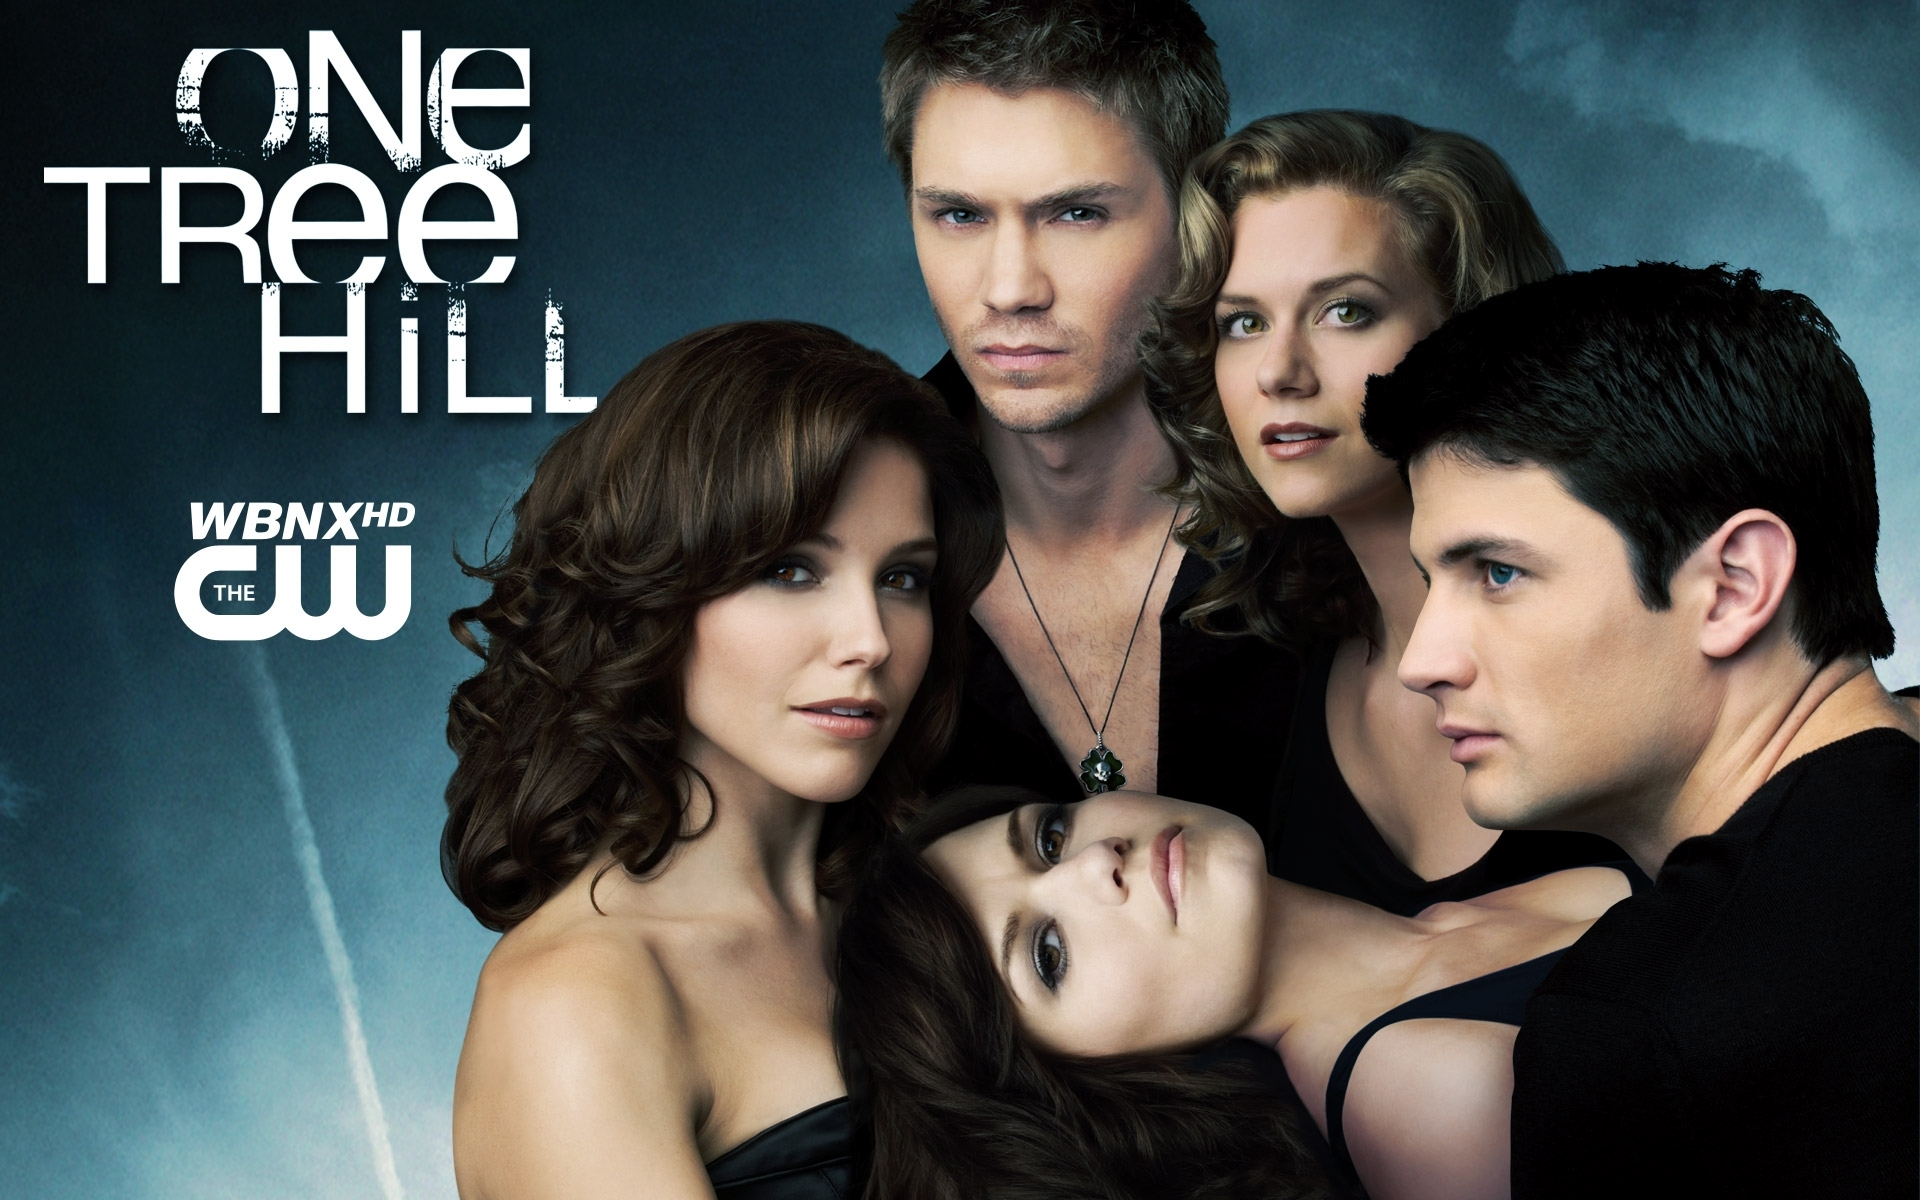 one tree hill wallpapers group with 49 items